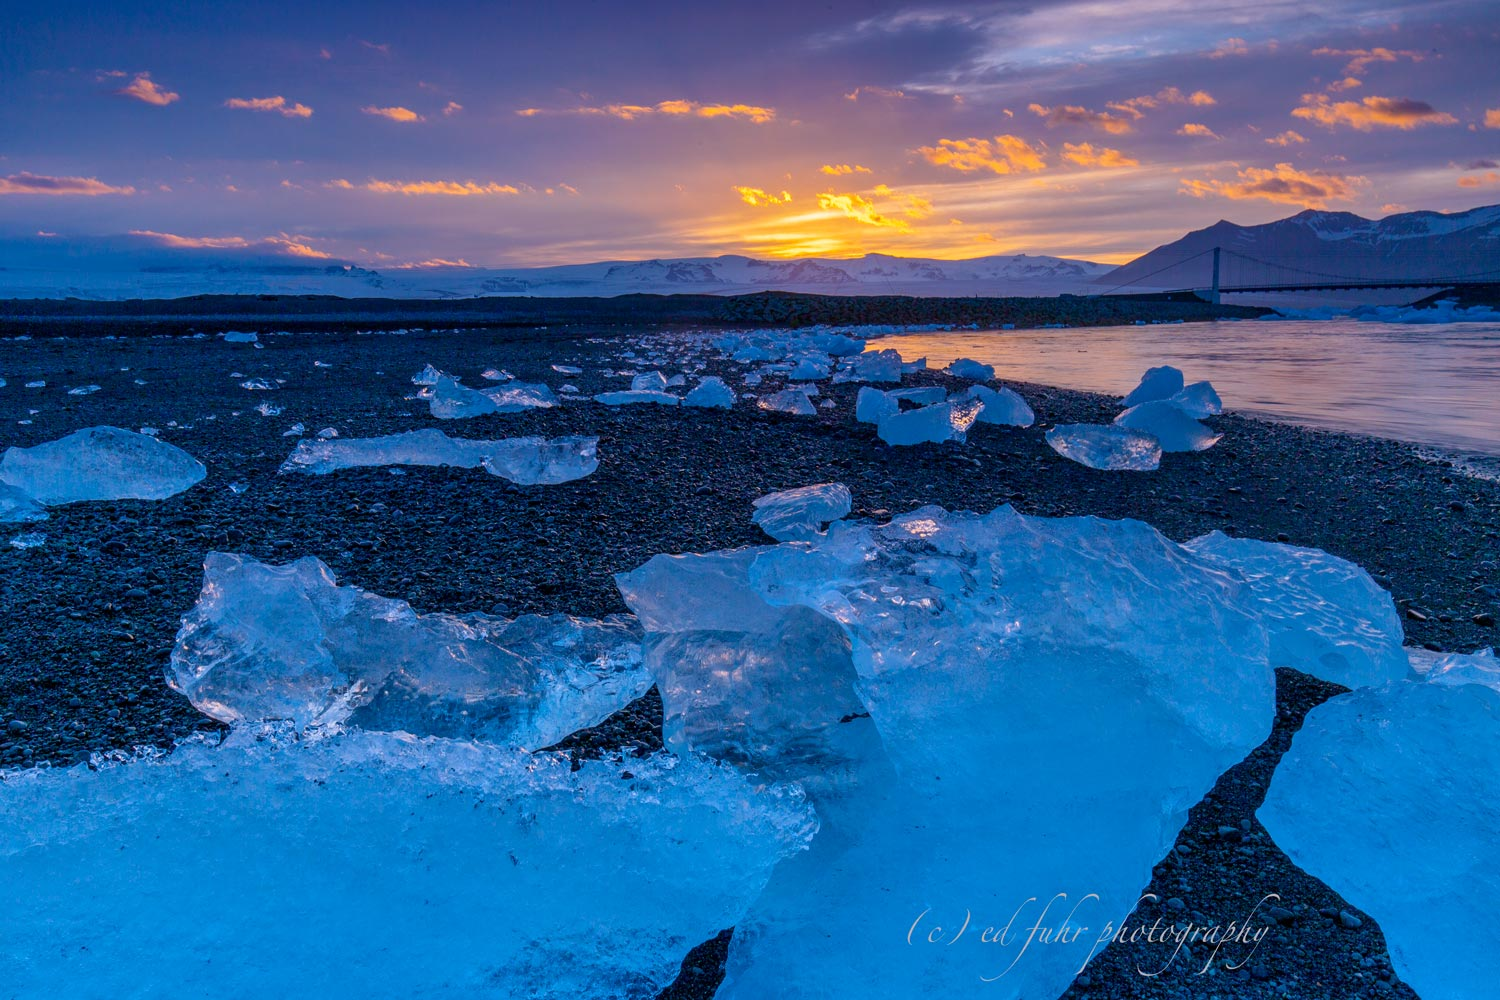 On Iceland's south coast, icebergs fill the Jökulsárlón glacier lagoon, only to wash up on the shore of Diamond Beach, creating...